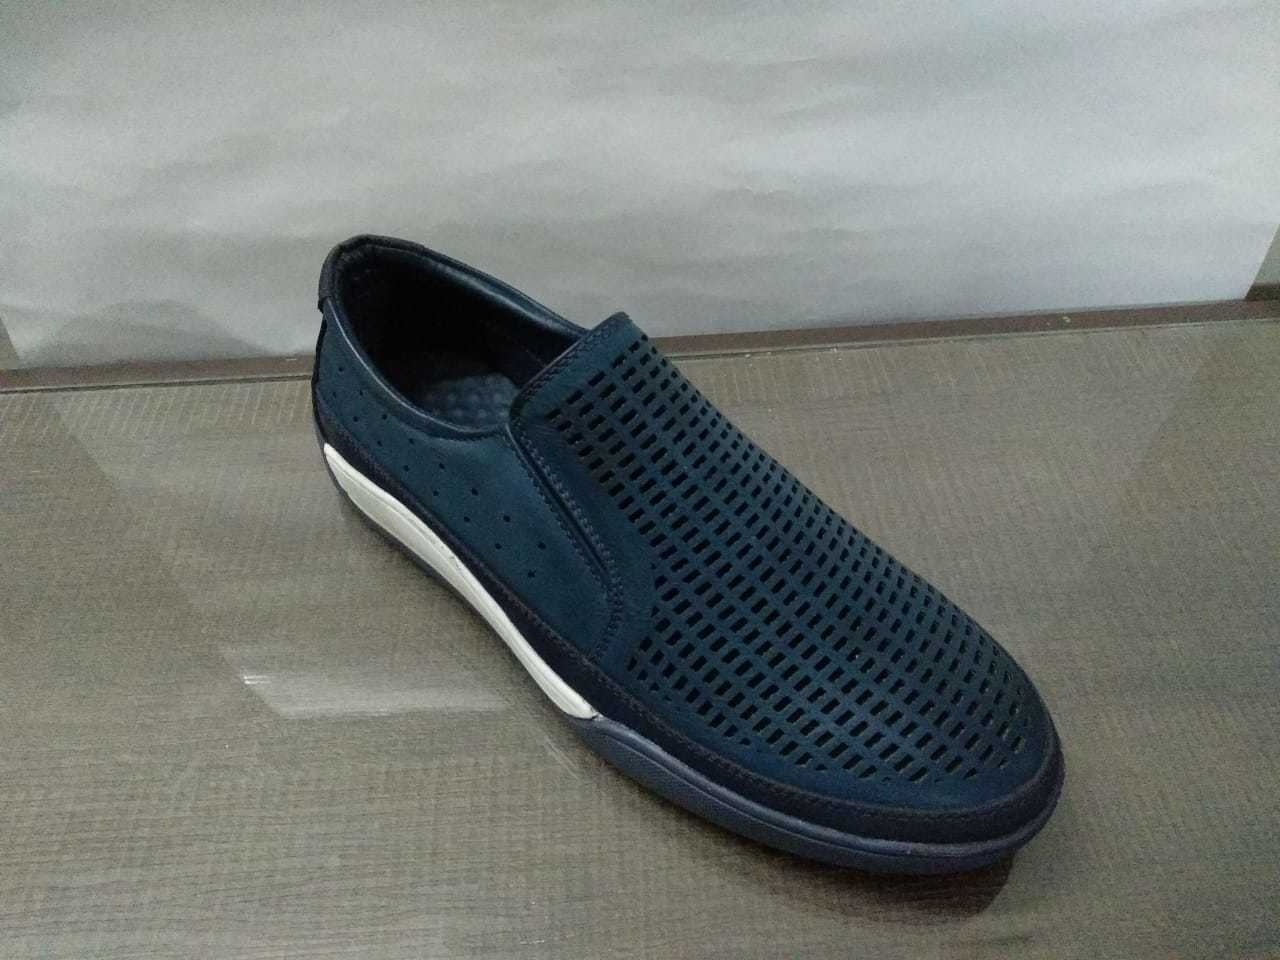 SKY BLUE COLOUR CASUAL LOAFER'S SHOES FOR MEN'S